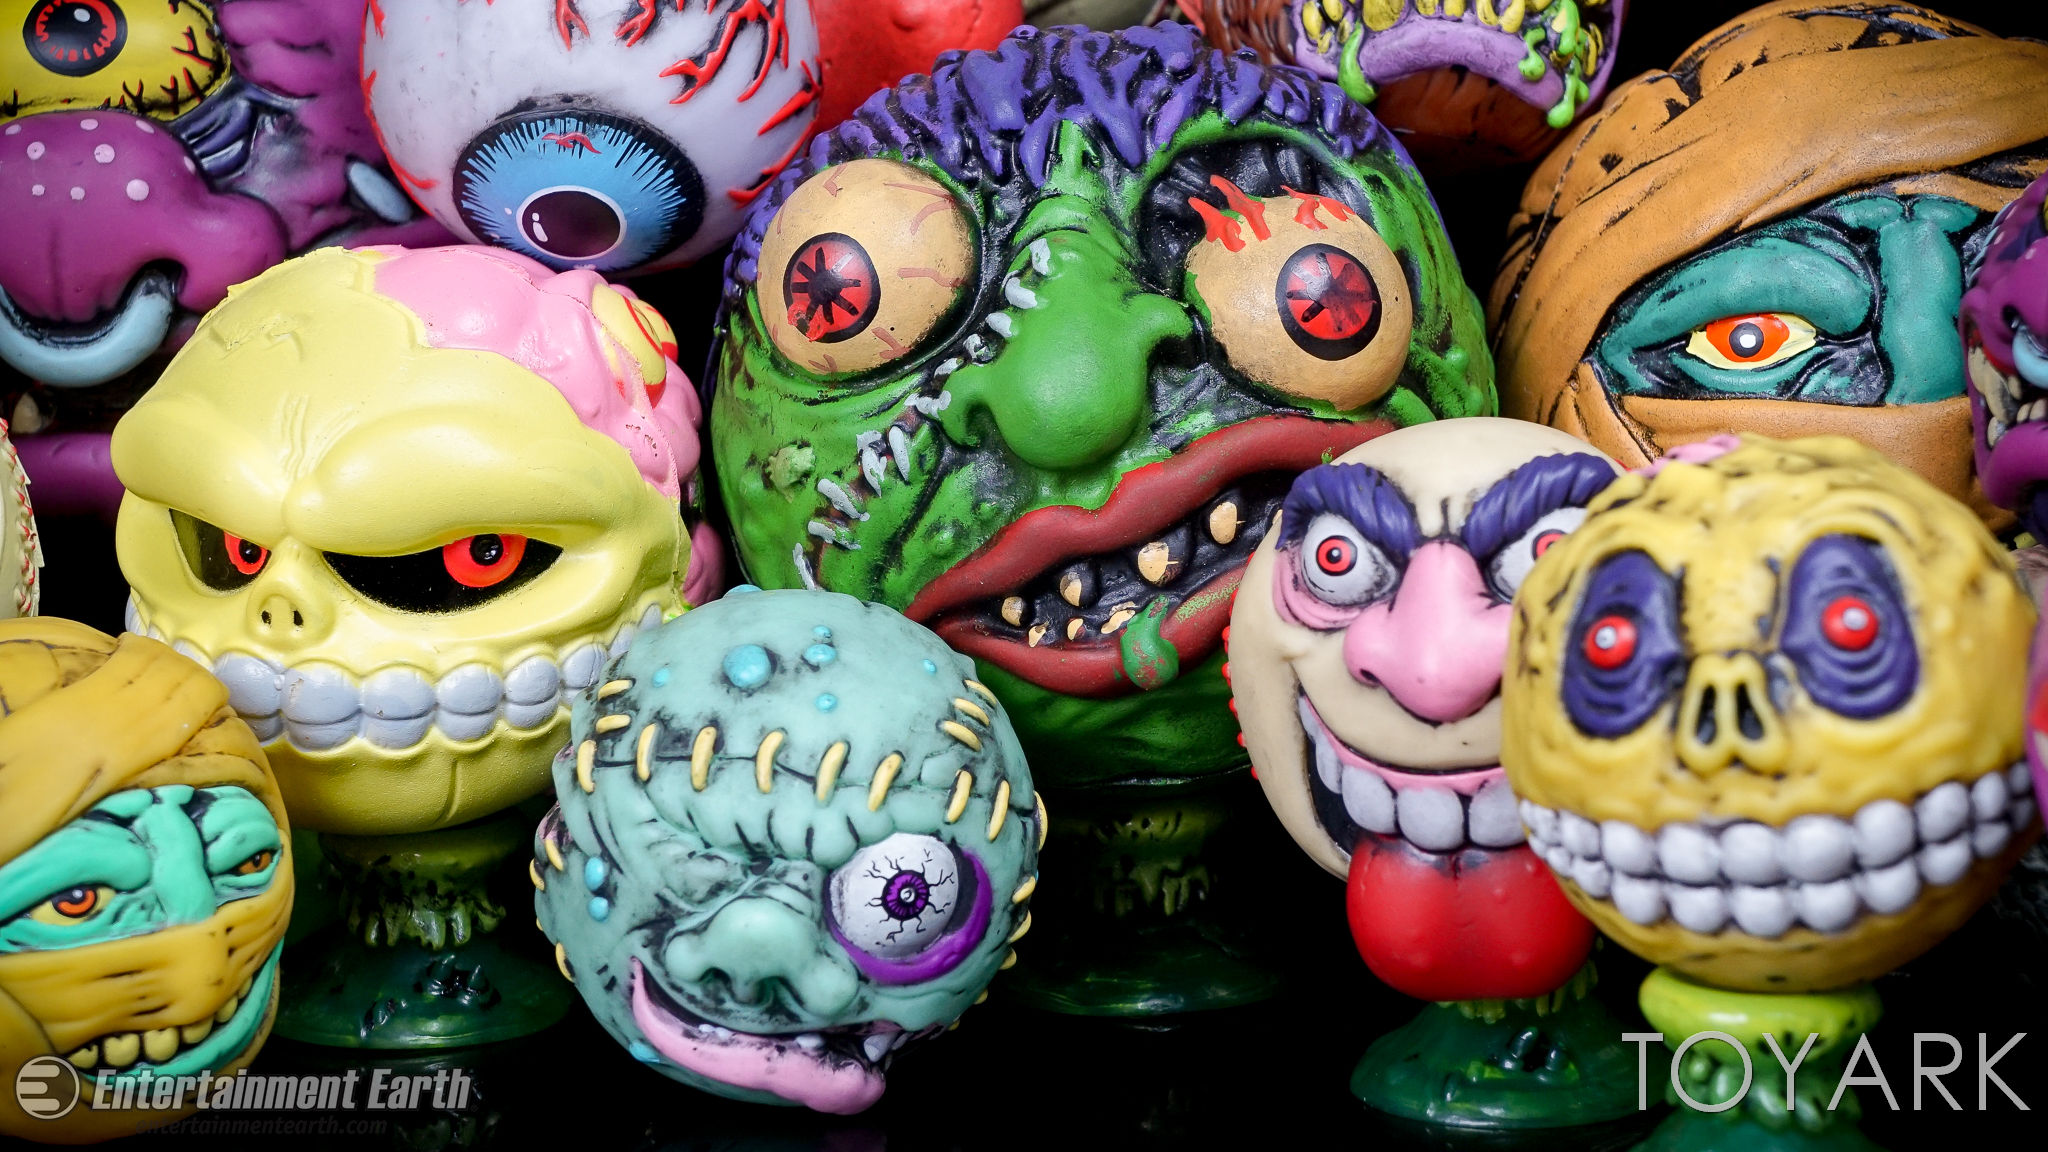 http://news.toyark.com/wp-content/uploads/sites/4/2017/03/Kidrobot-Foam-Madballs-033.jpg